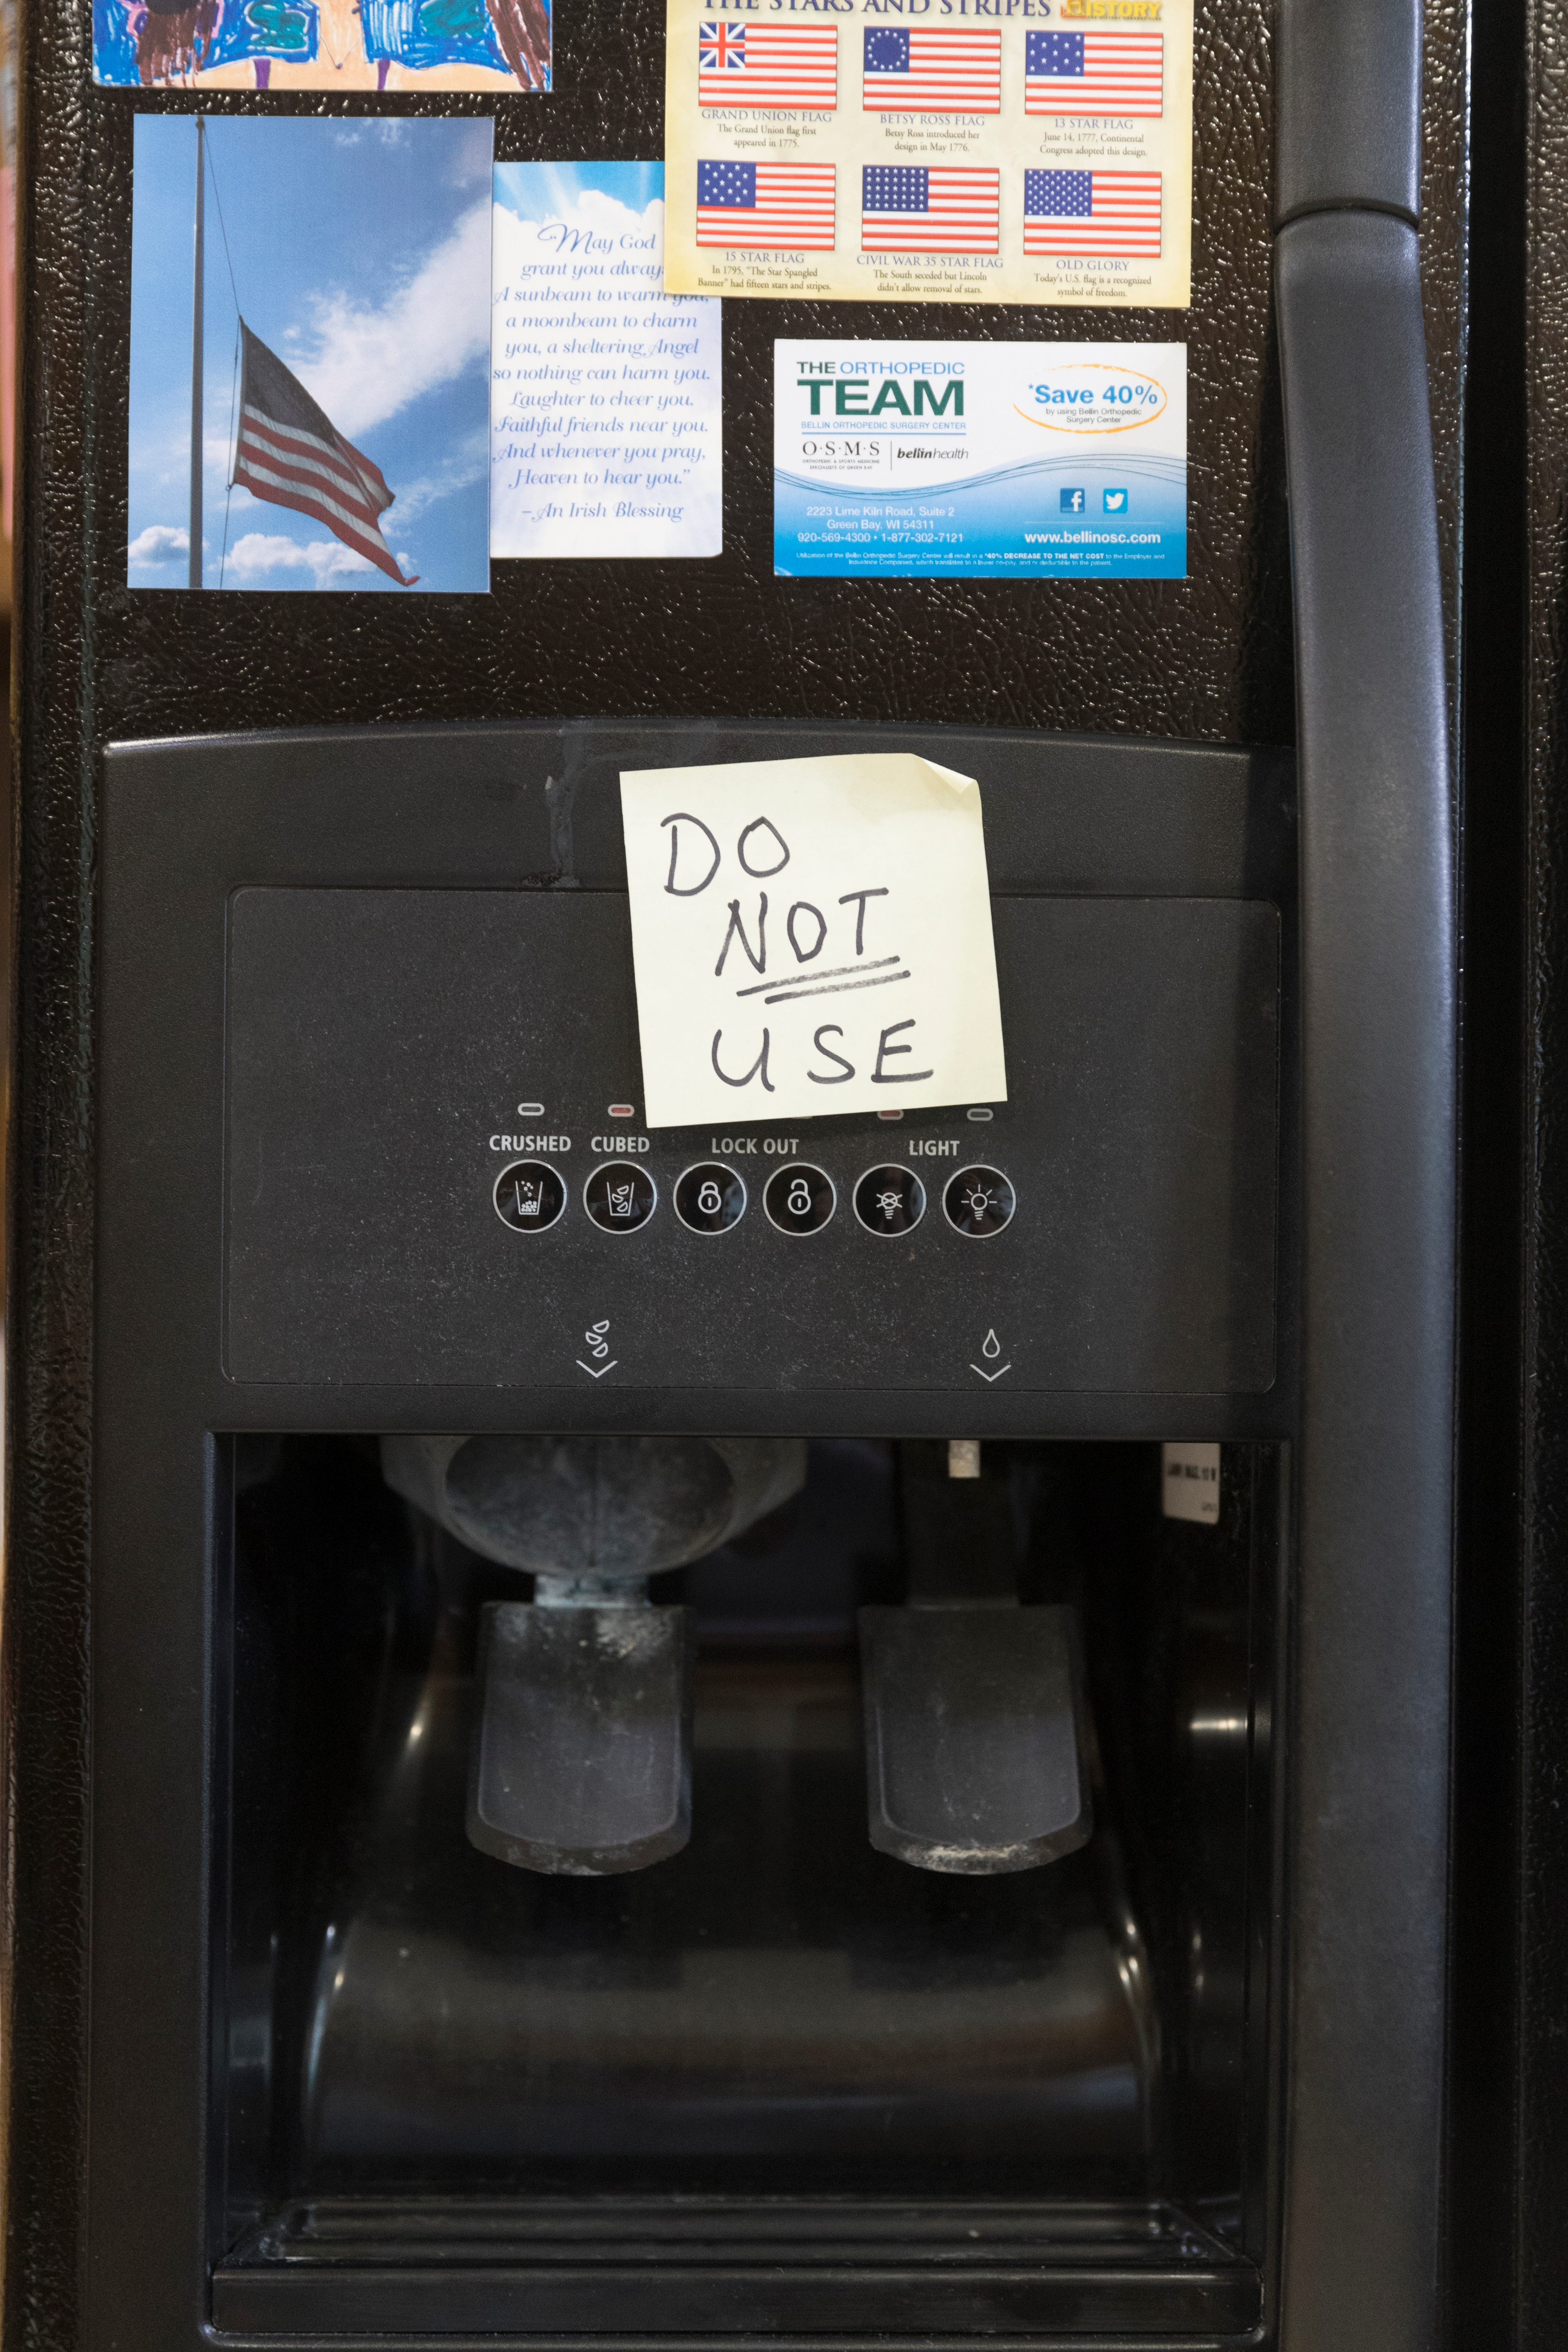 Arlin and Mary Lou Karnopp have a reminder on their refrigerator's water dispenser not to use it.